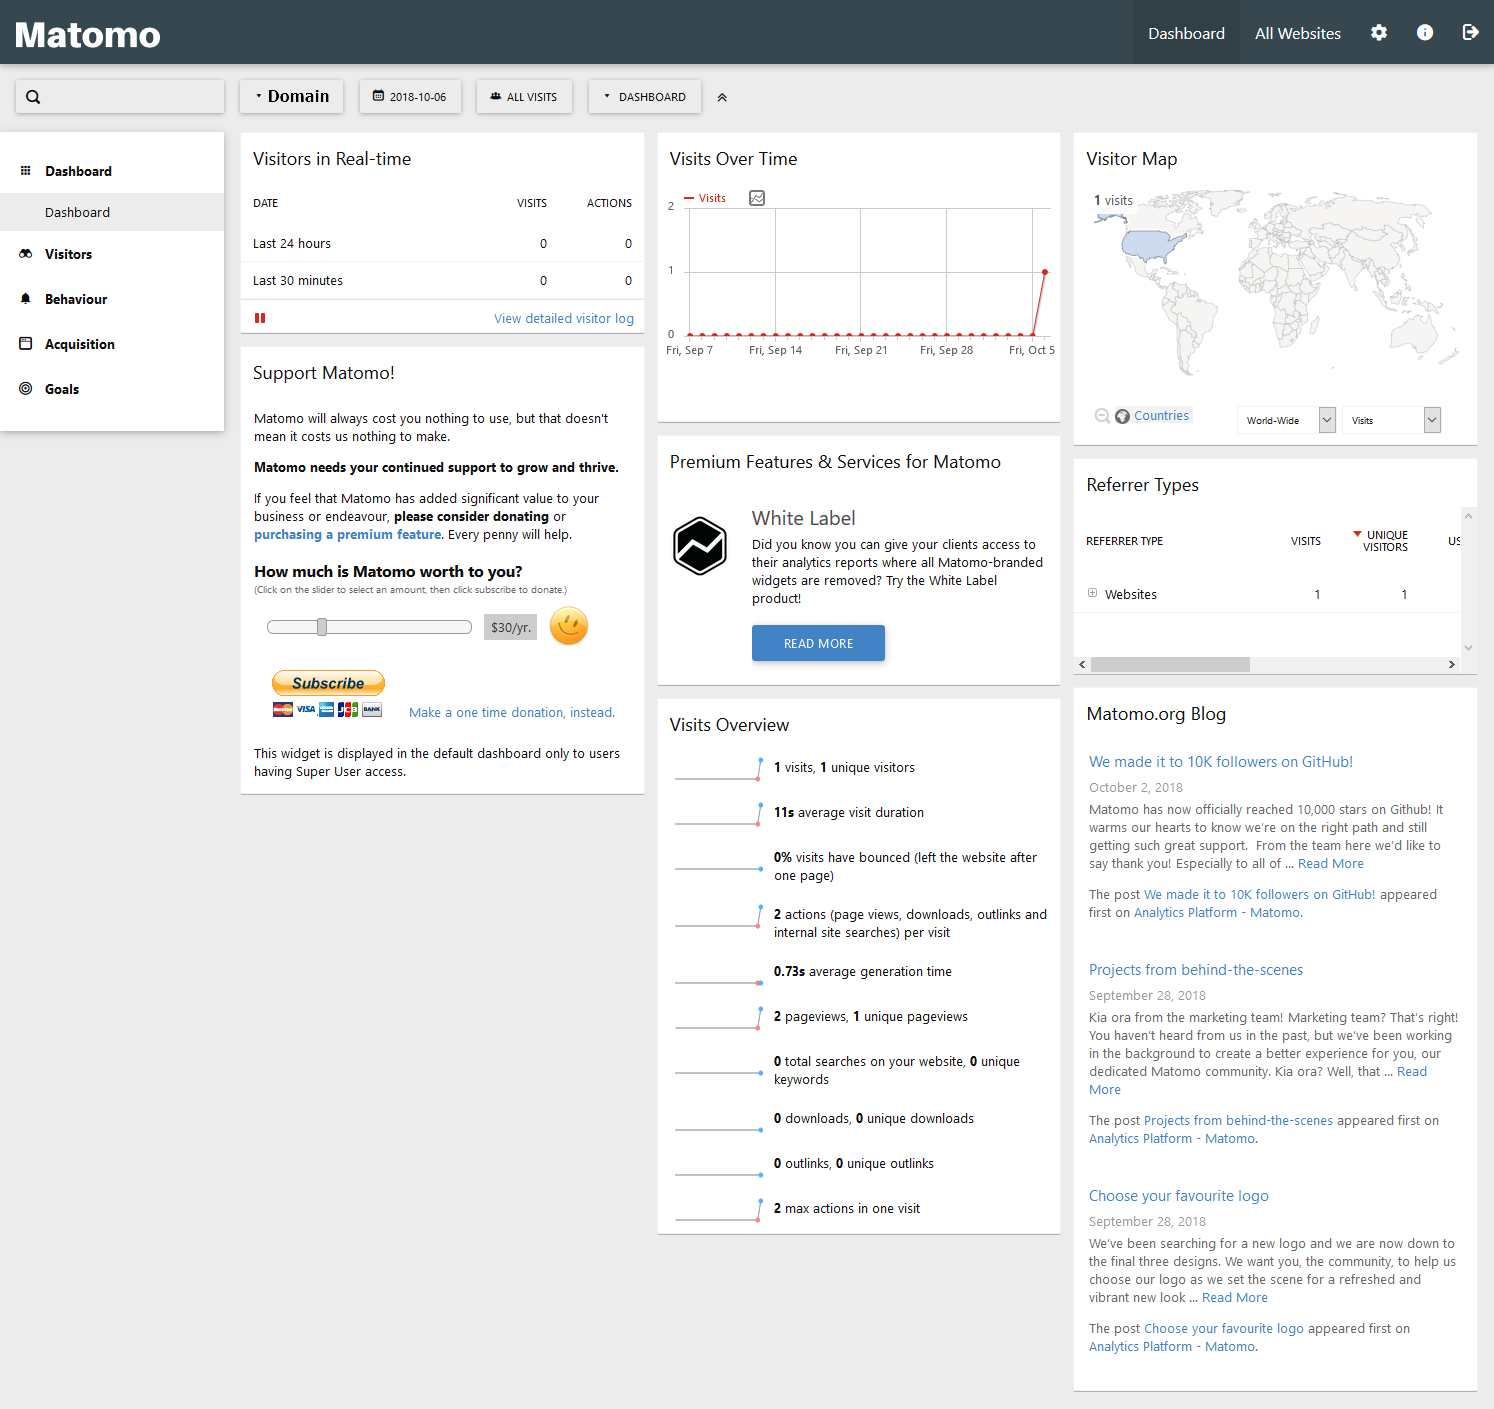 Matomo website dashboard